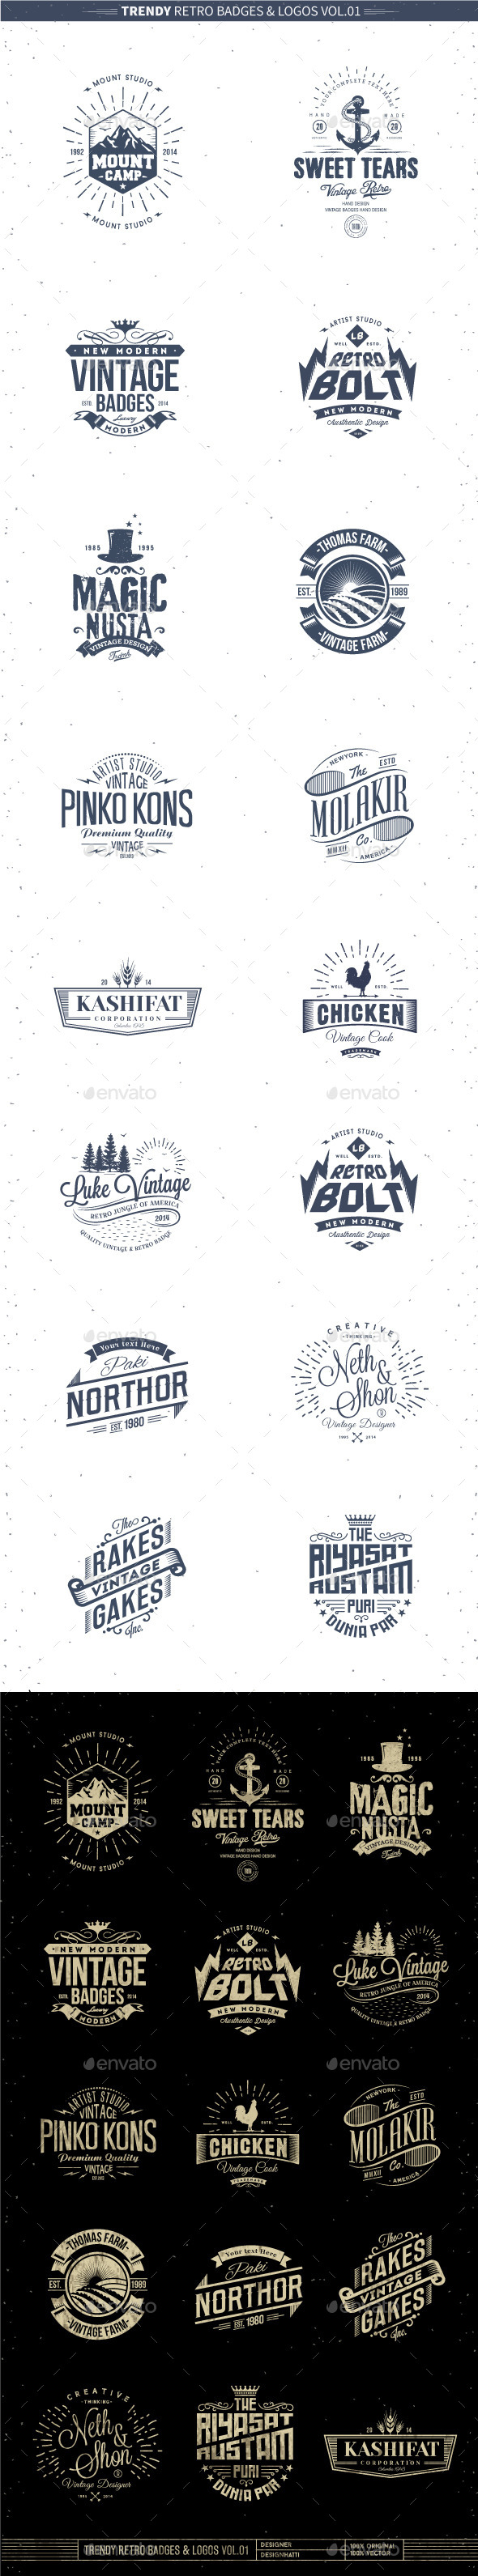 Trendy Retro Badges and Logos Vol.01 - Badges & Stickers Web Elements